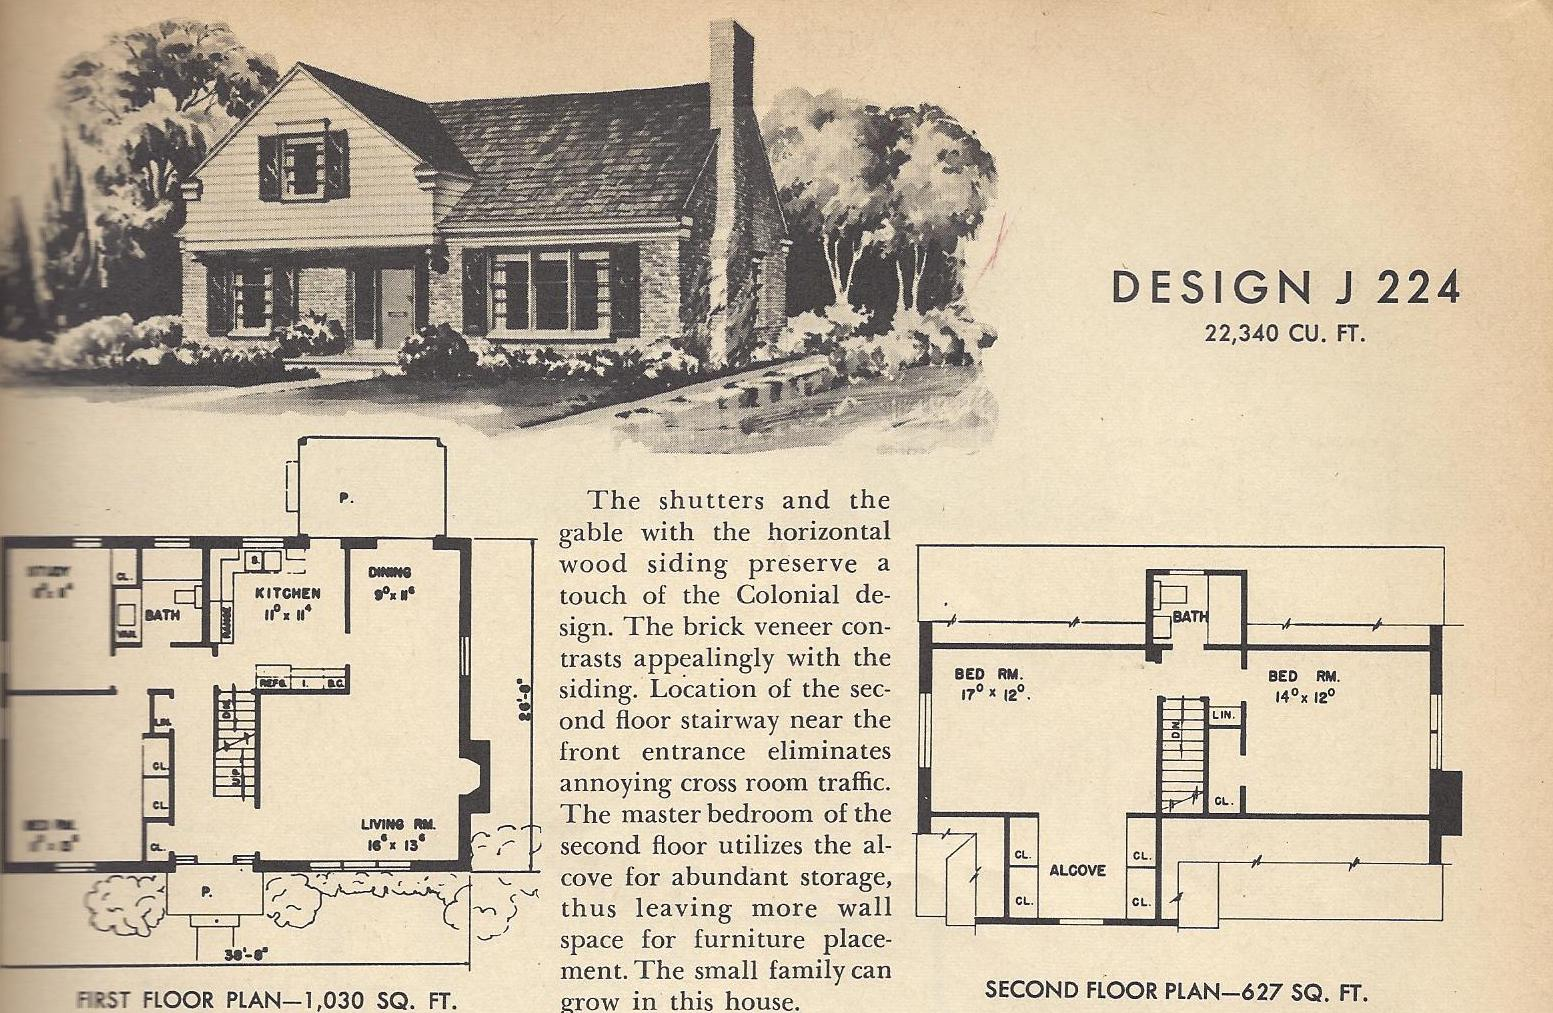 Vintage house plans j224 antique alter ego for New old home plans